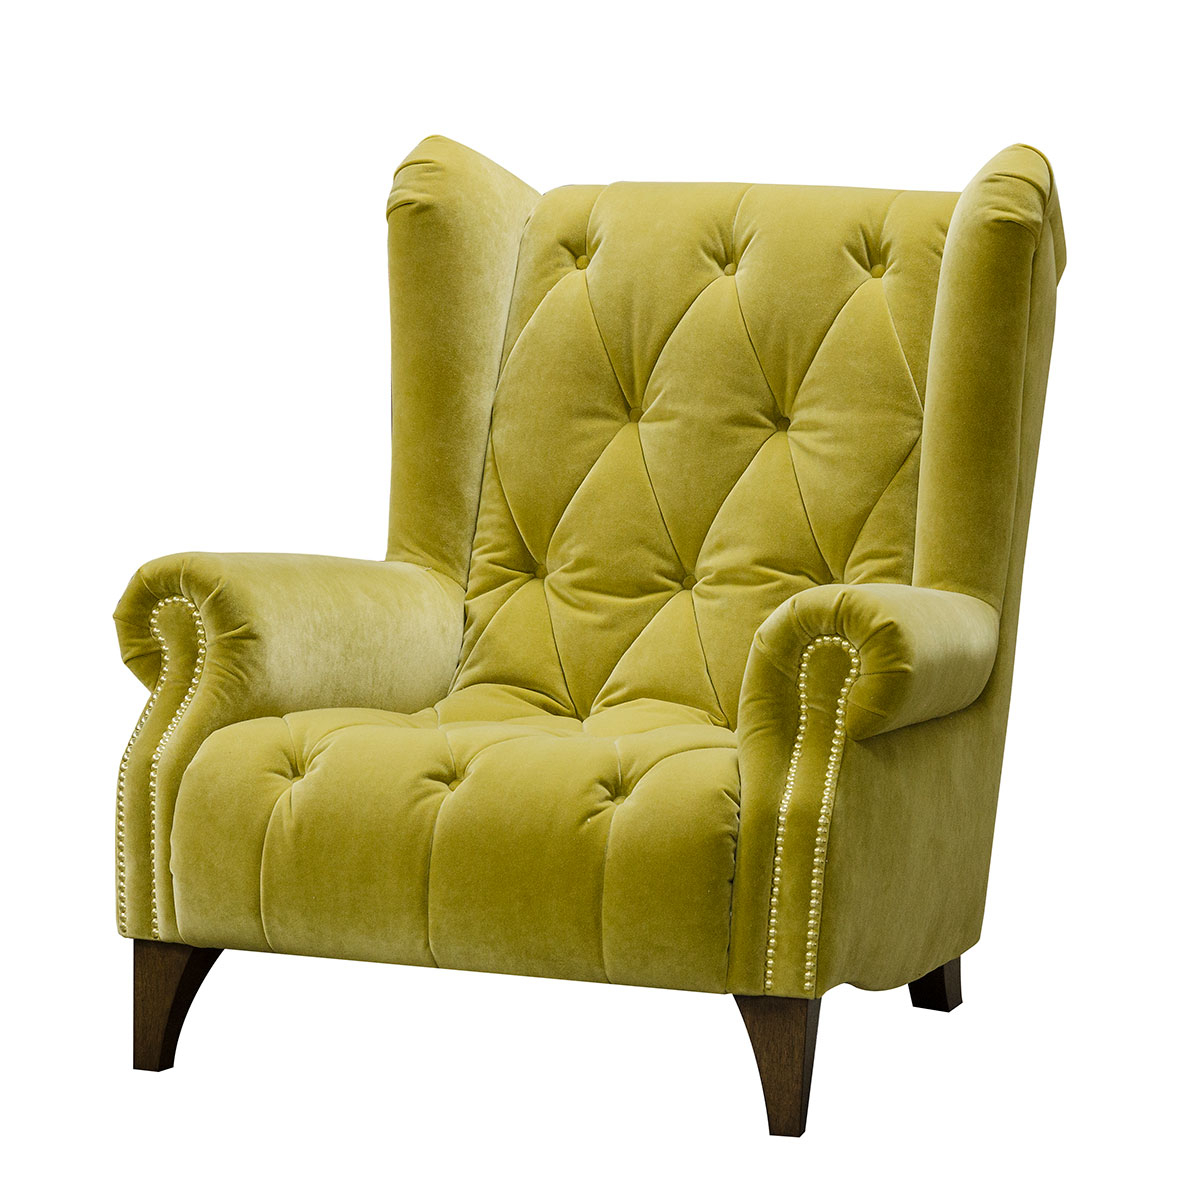 Alexander & James Ossie Armchair – Biba Mustard Inside James Armchairs (View 7 of 15)